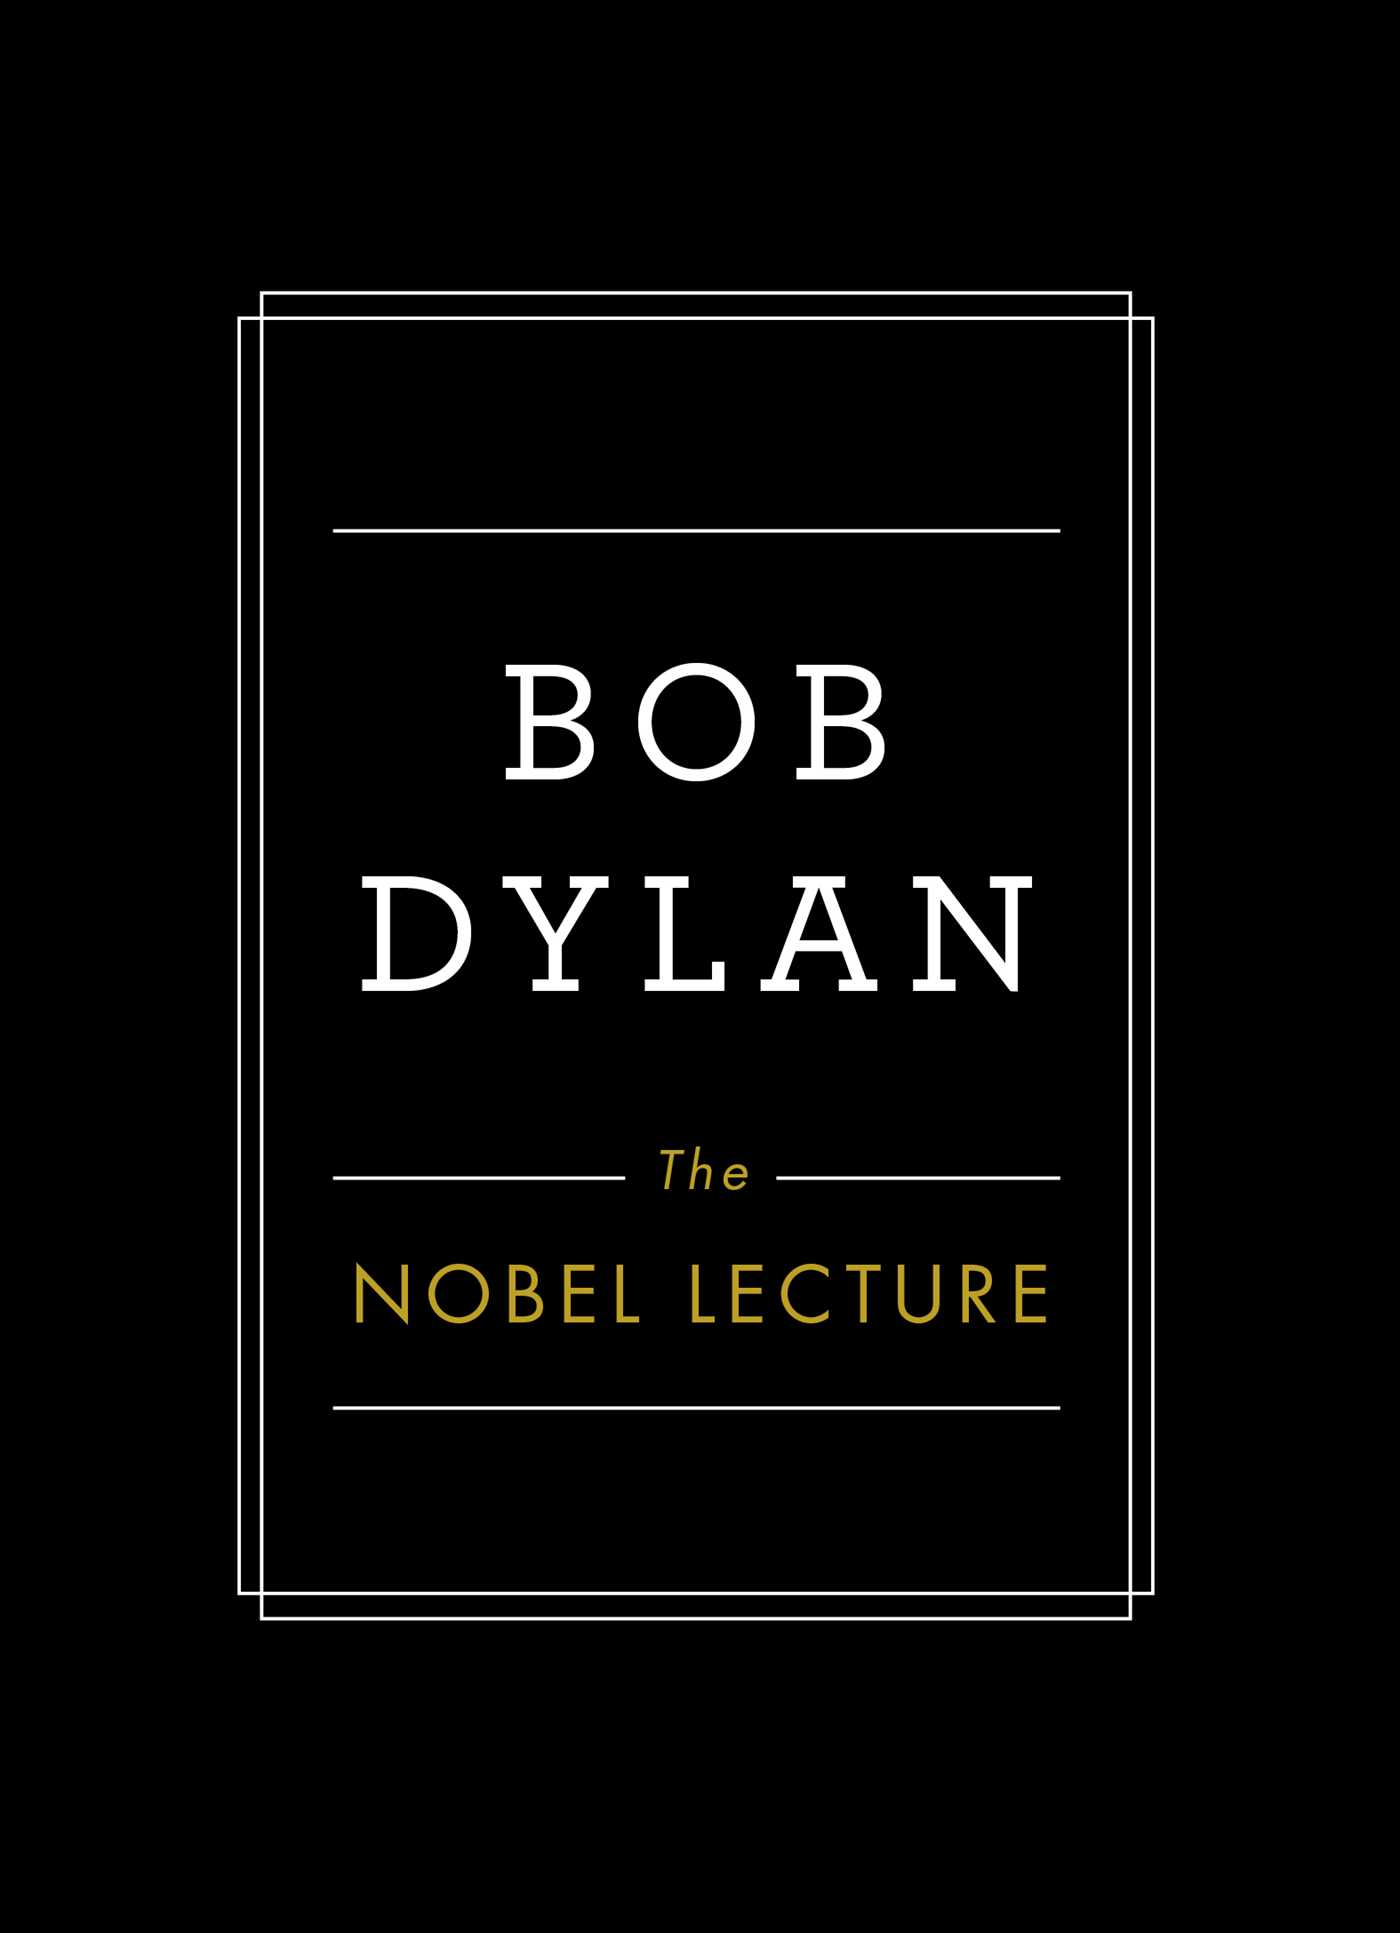 The nobel lecture 9781501189418 hr